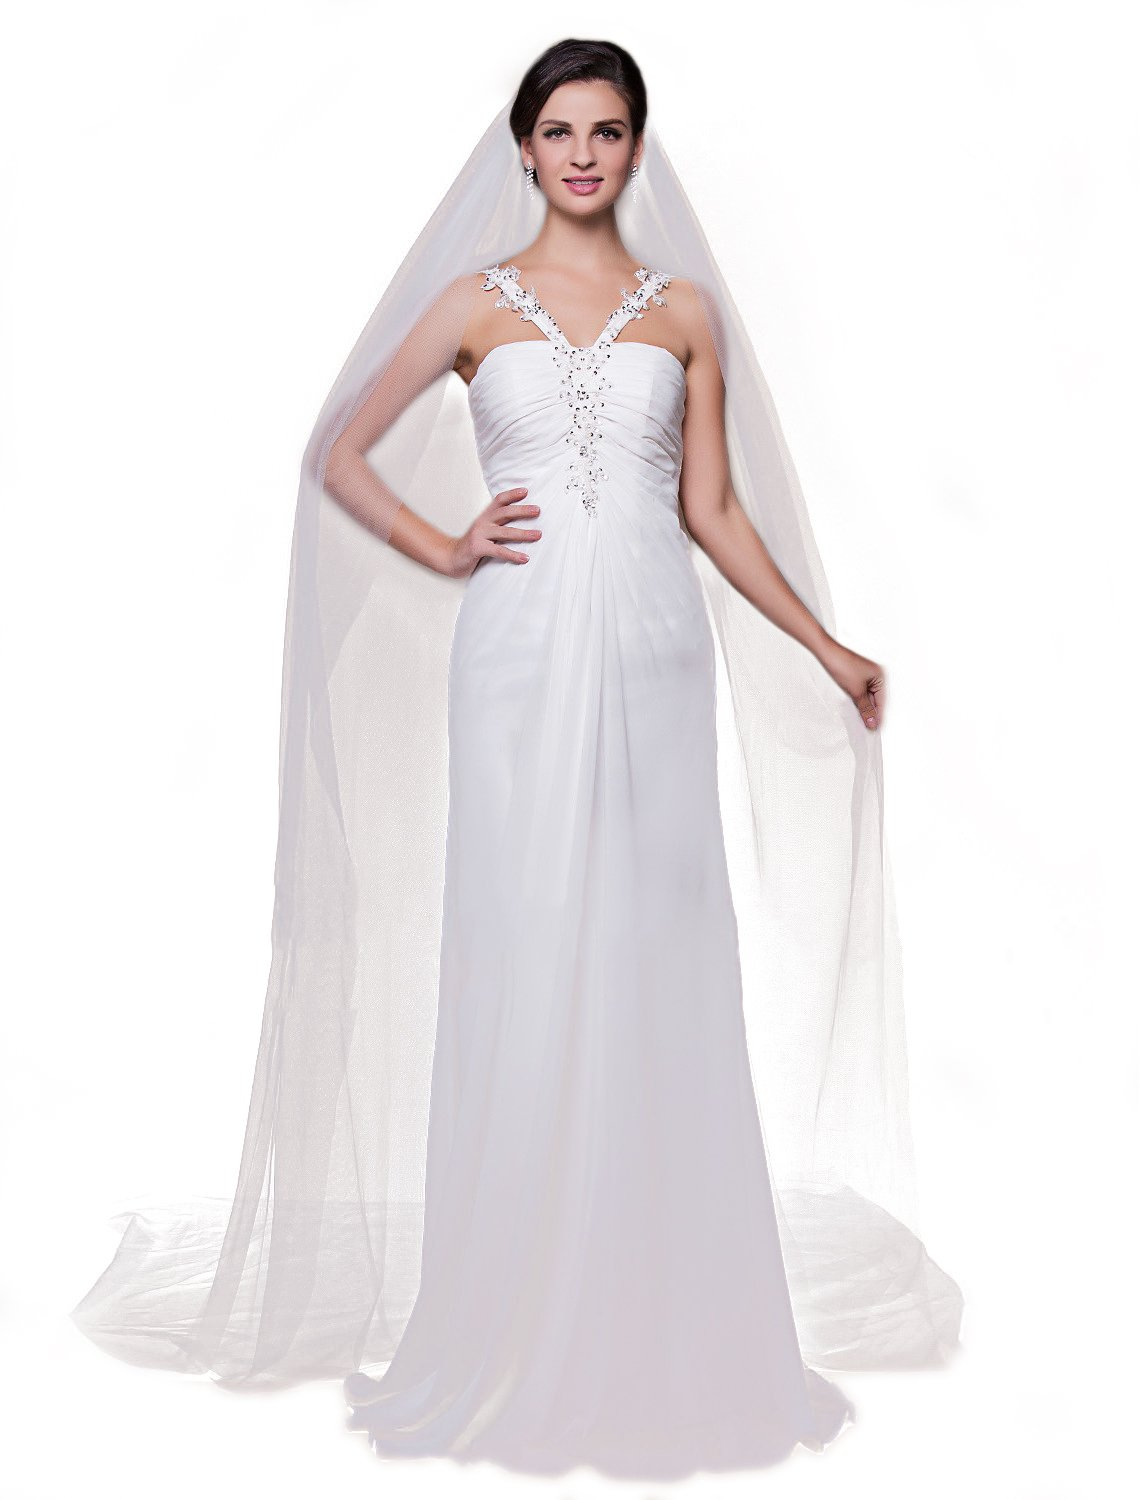 Barogirl 2 Tier Wedding Veil Cathedral Length Bridal Veil with Comb (White)